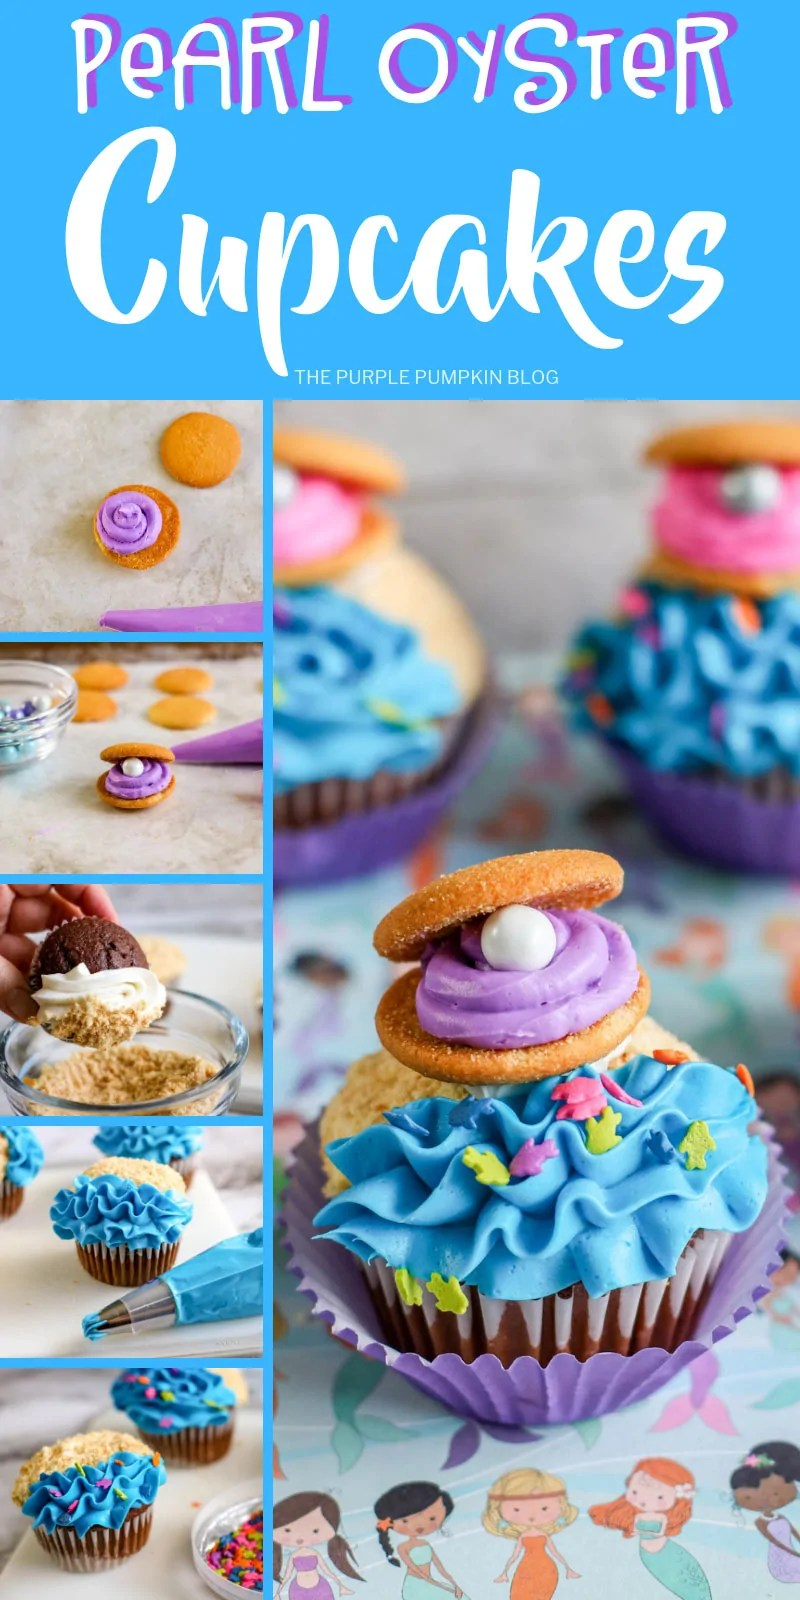 Pearl Oyster Cupcakes with step-by-step pictures.